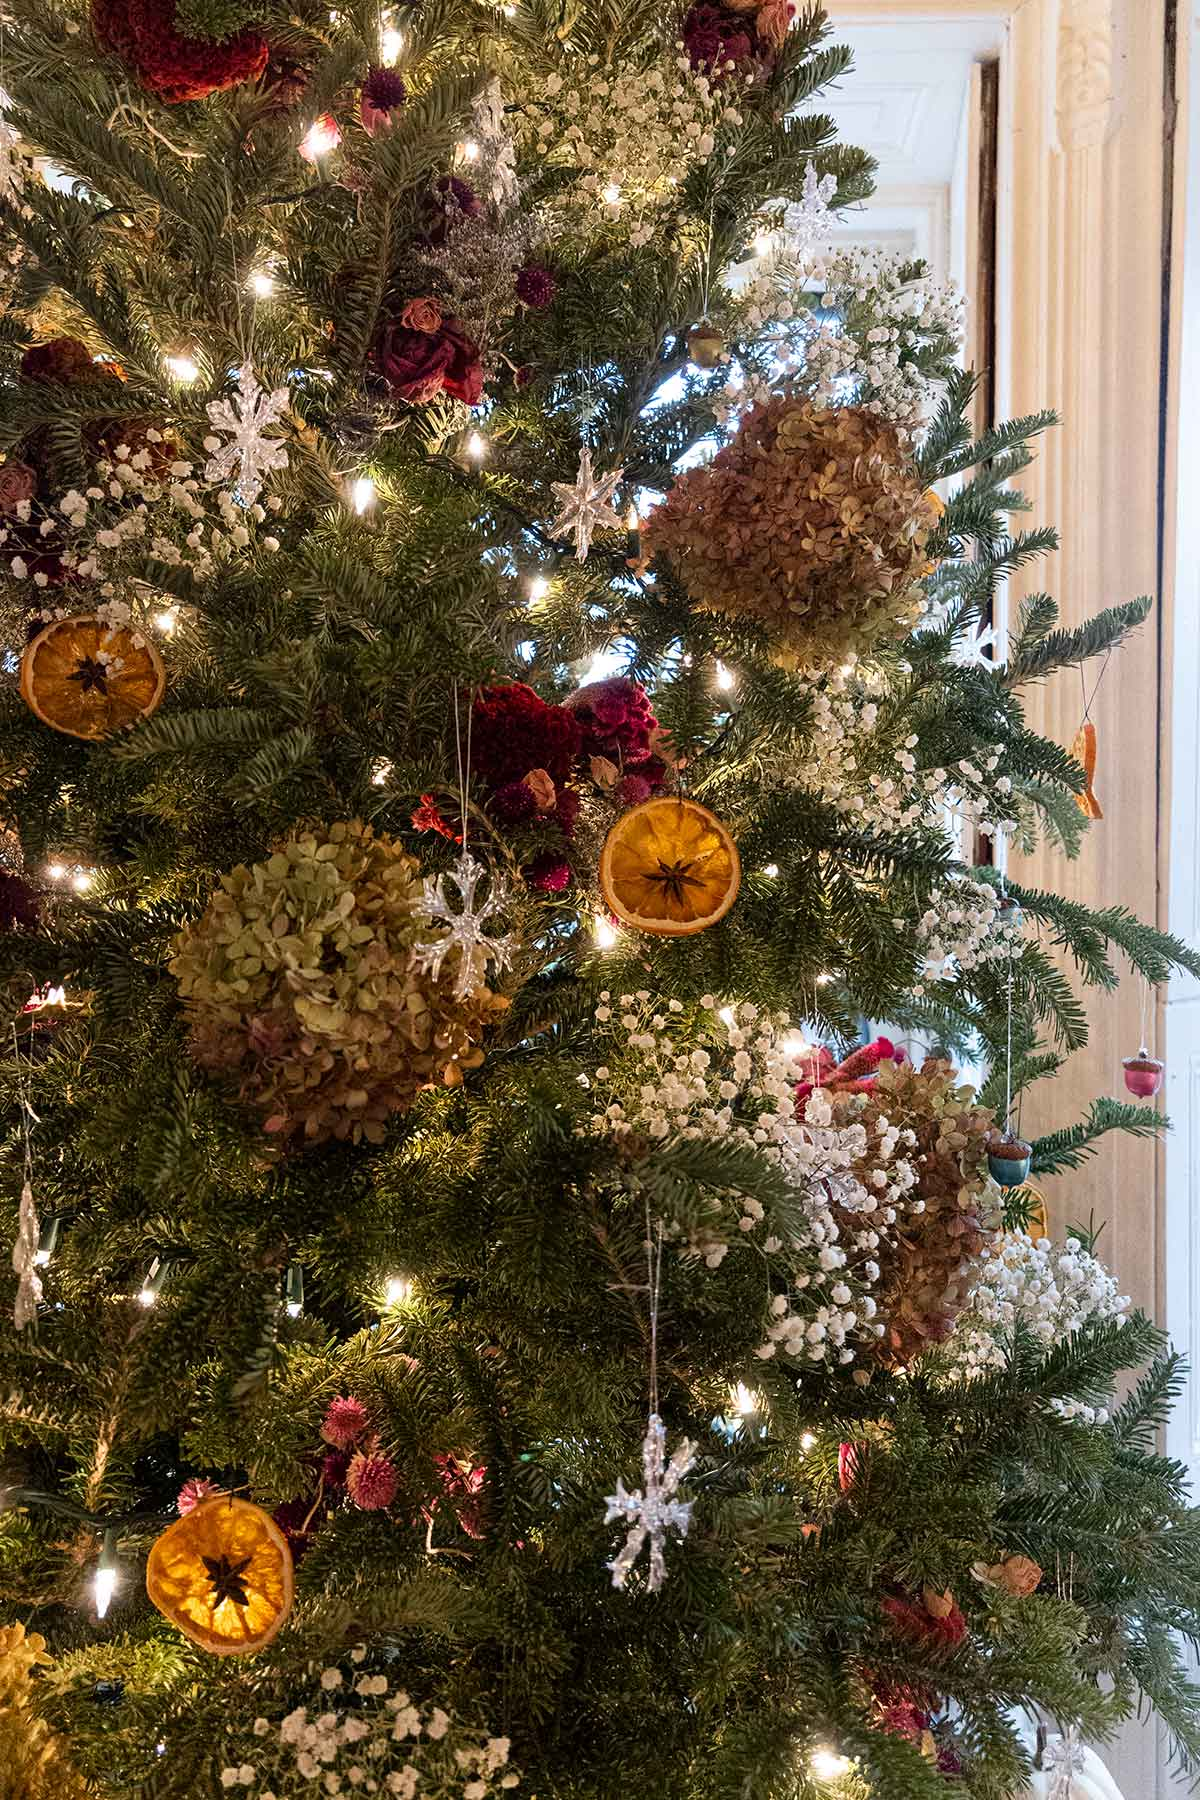 A Christmas tree with baby's breath and flower decorations, dry oranges and glass snowflakes..